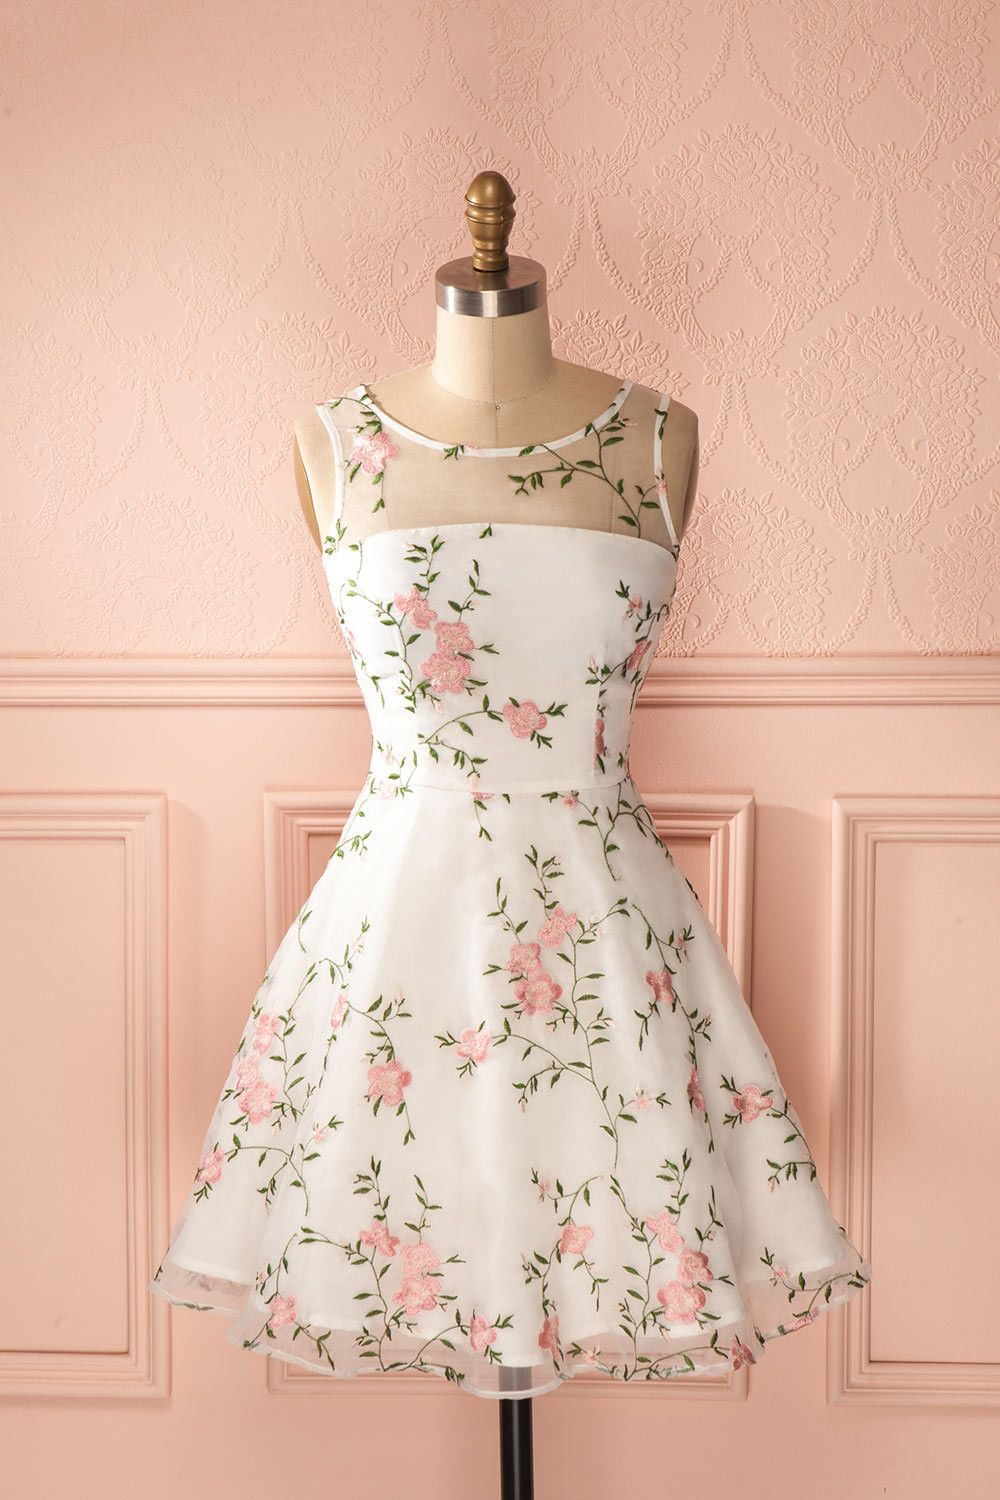 She wore on her dress a delicate rose garden fafeda006